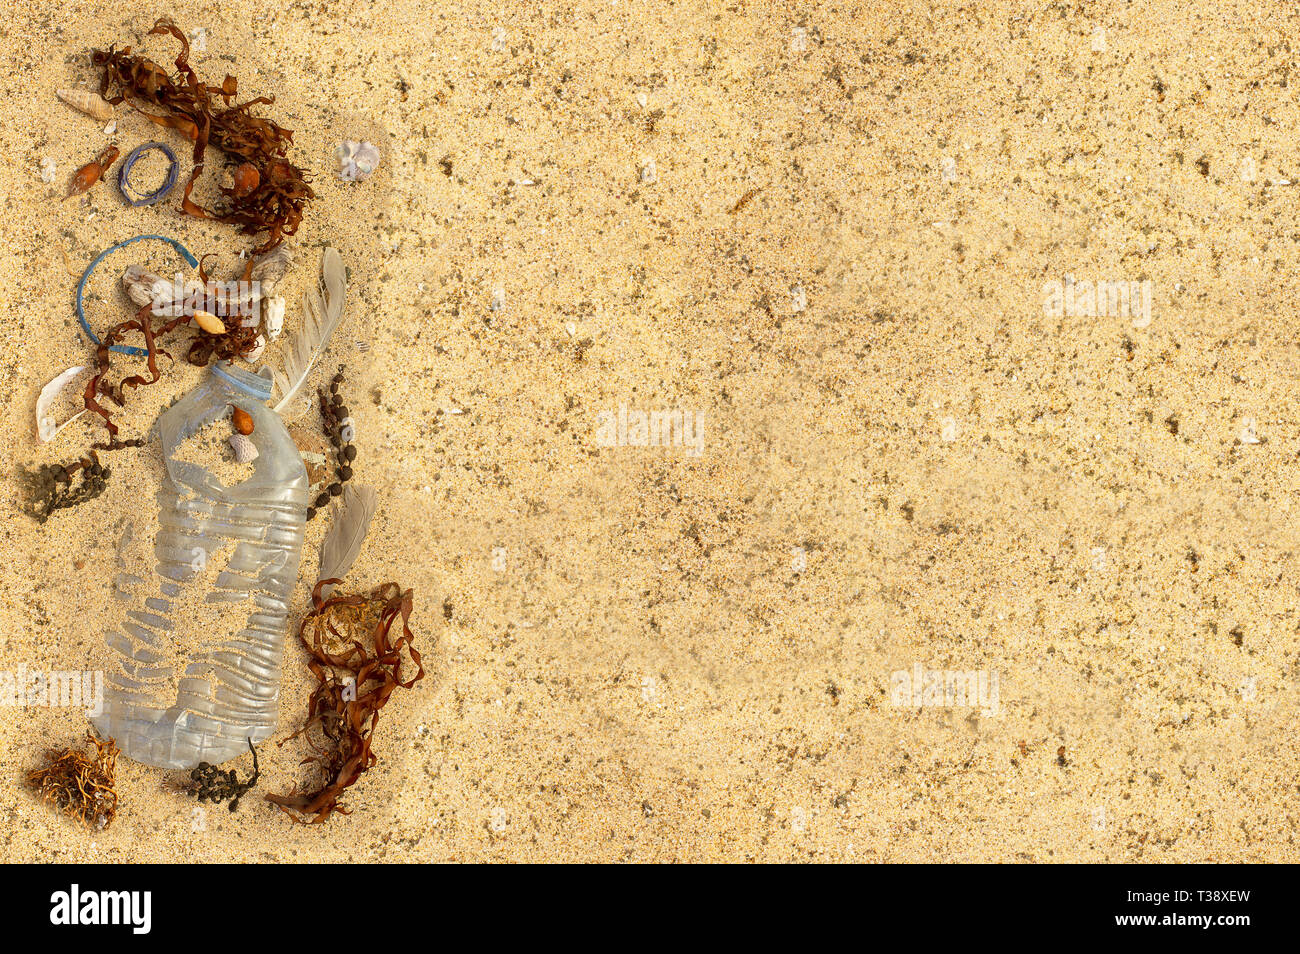 Real plastic bottle, with cap and plastic straw washed up on beach mixed with seaweed shells and feathers. Room for text - Stock Image